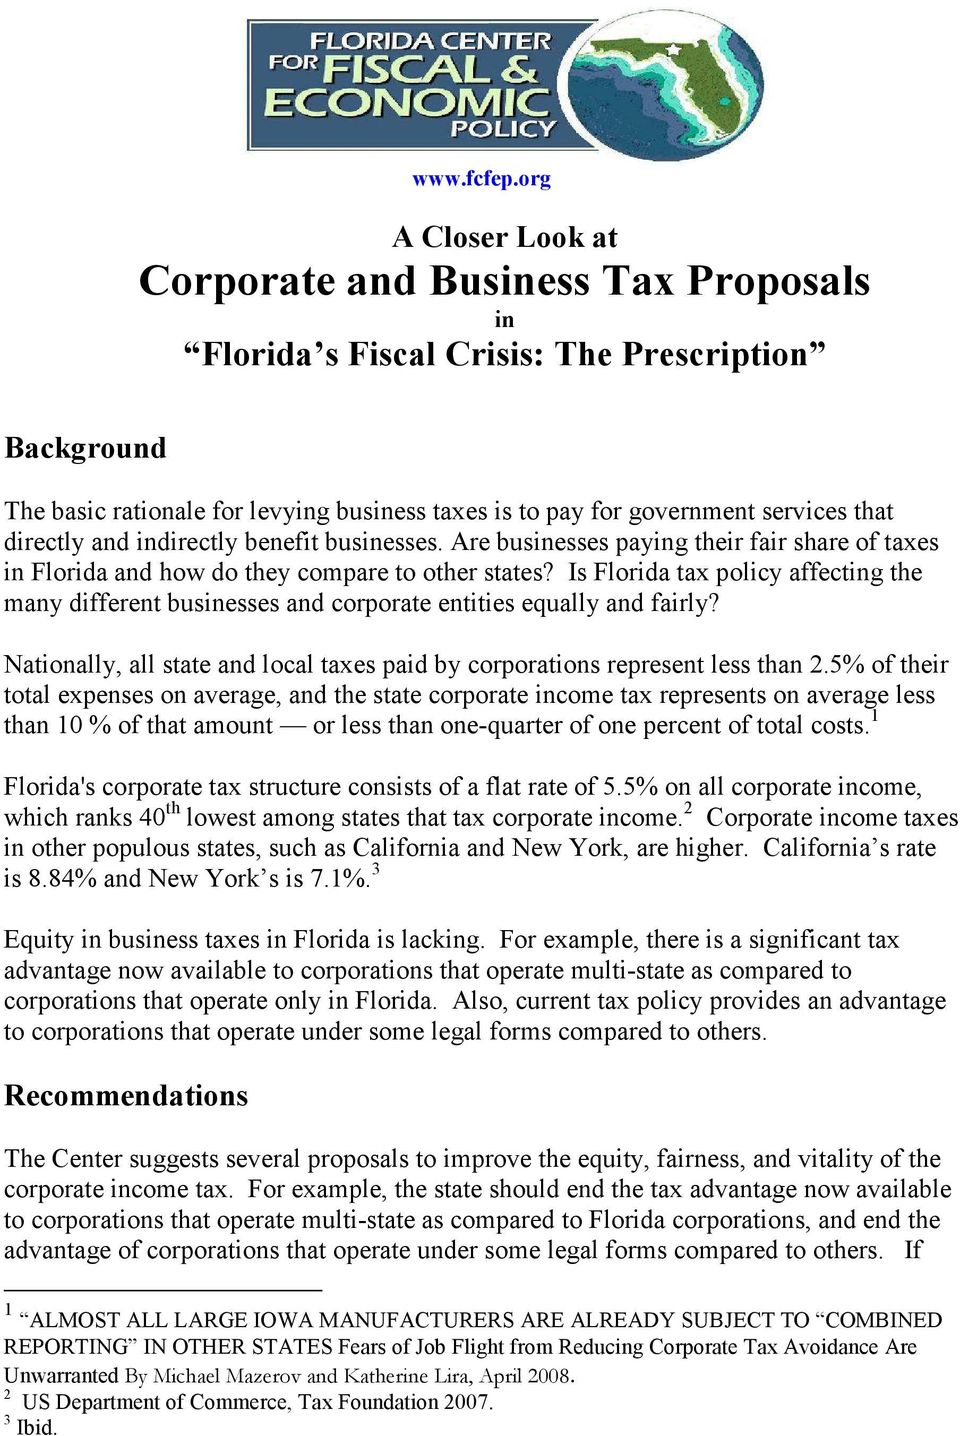 directly and indirectly benefit businesses. Are businesses paying their fair share of taxes in Florida and how do they compare to other states?